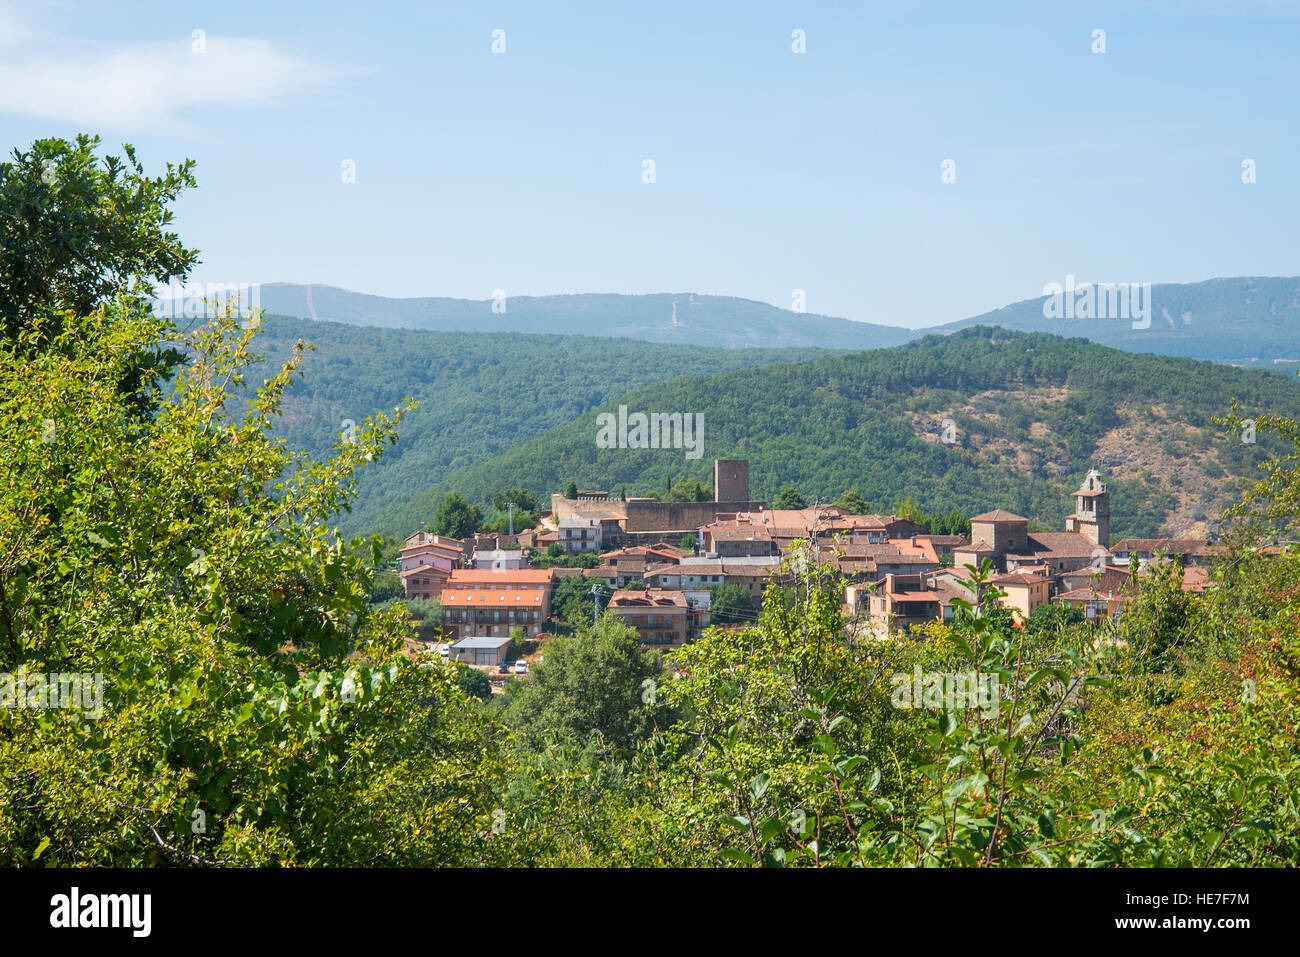 Overview of the village and landscape. San Martin del Castañar, Sierra de Francia Nature Reserve, Salamanca - Stock Image